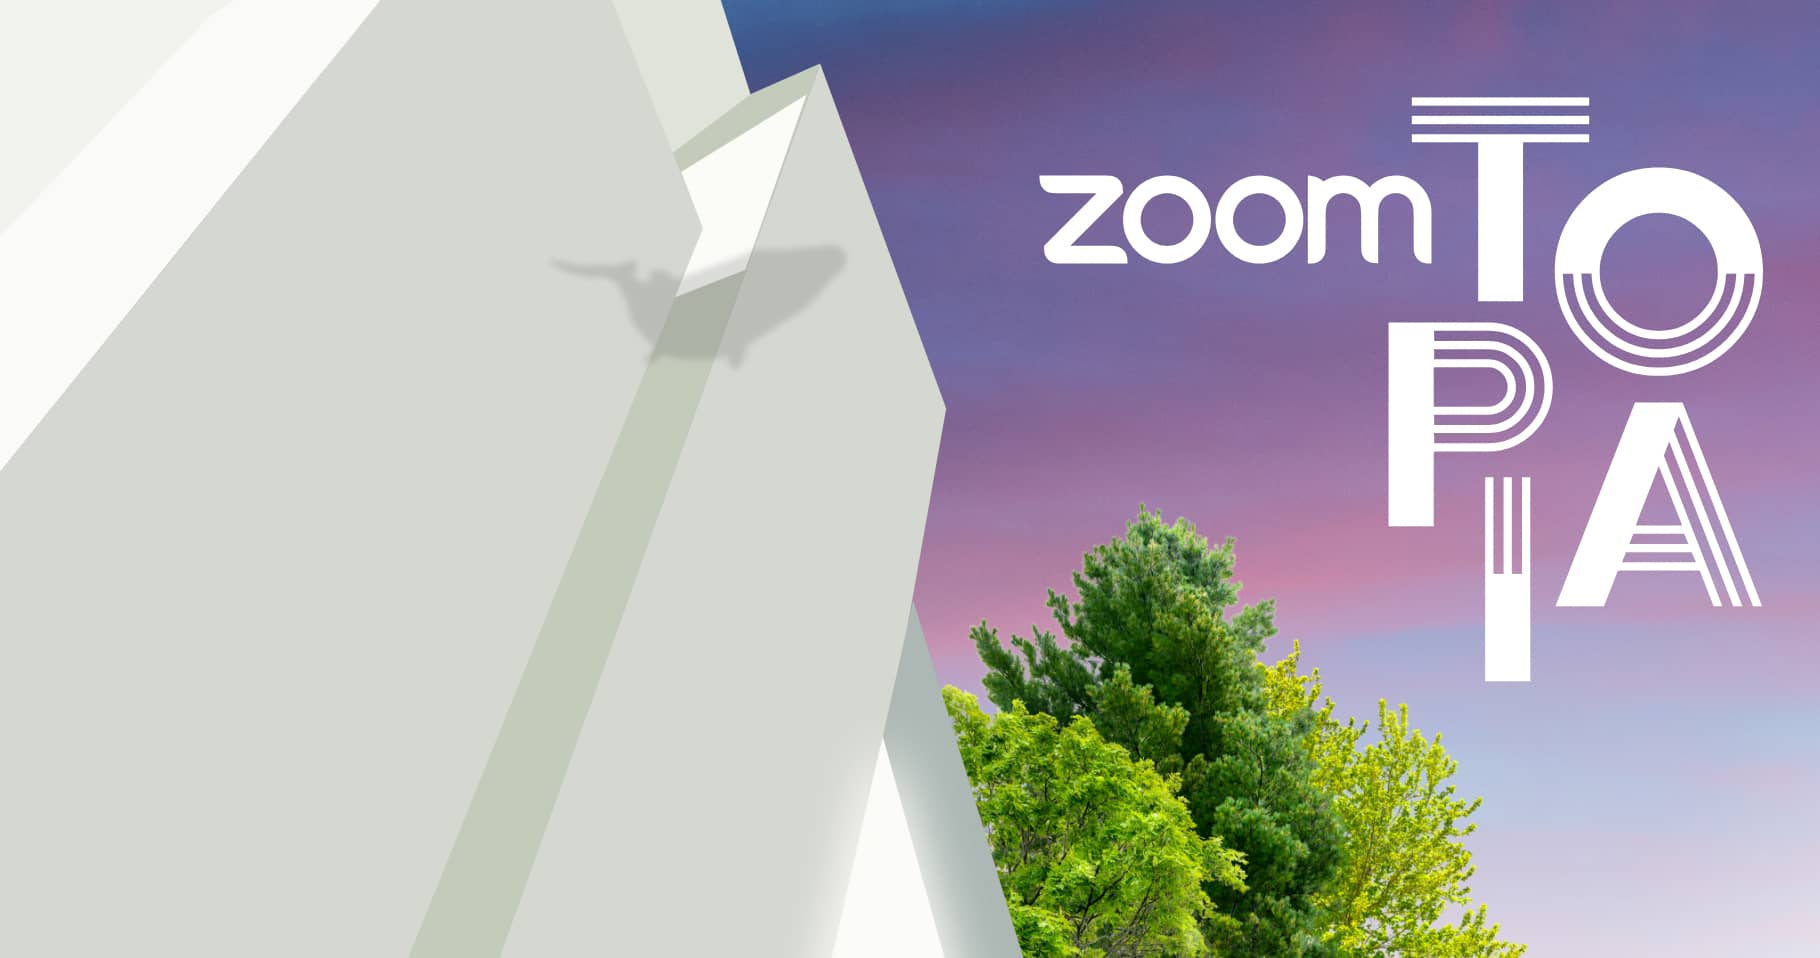 Zoom plans to add real-time translation for 12 languages next year